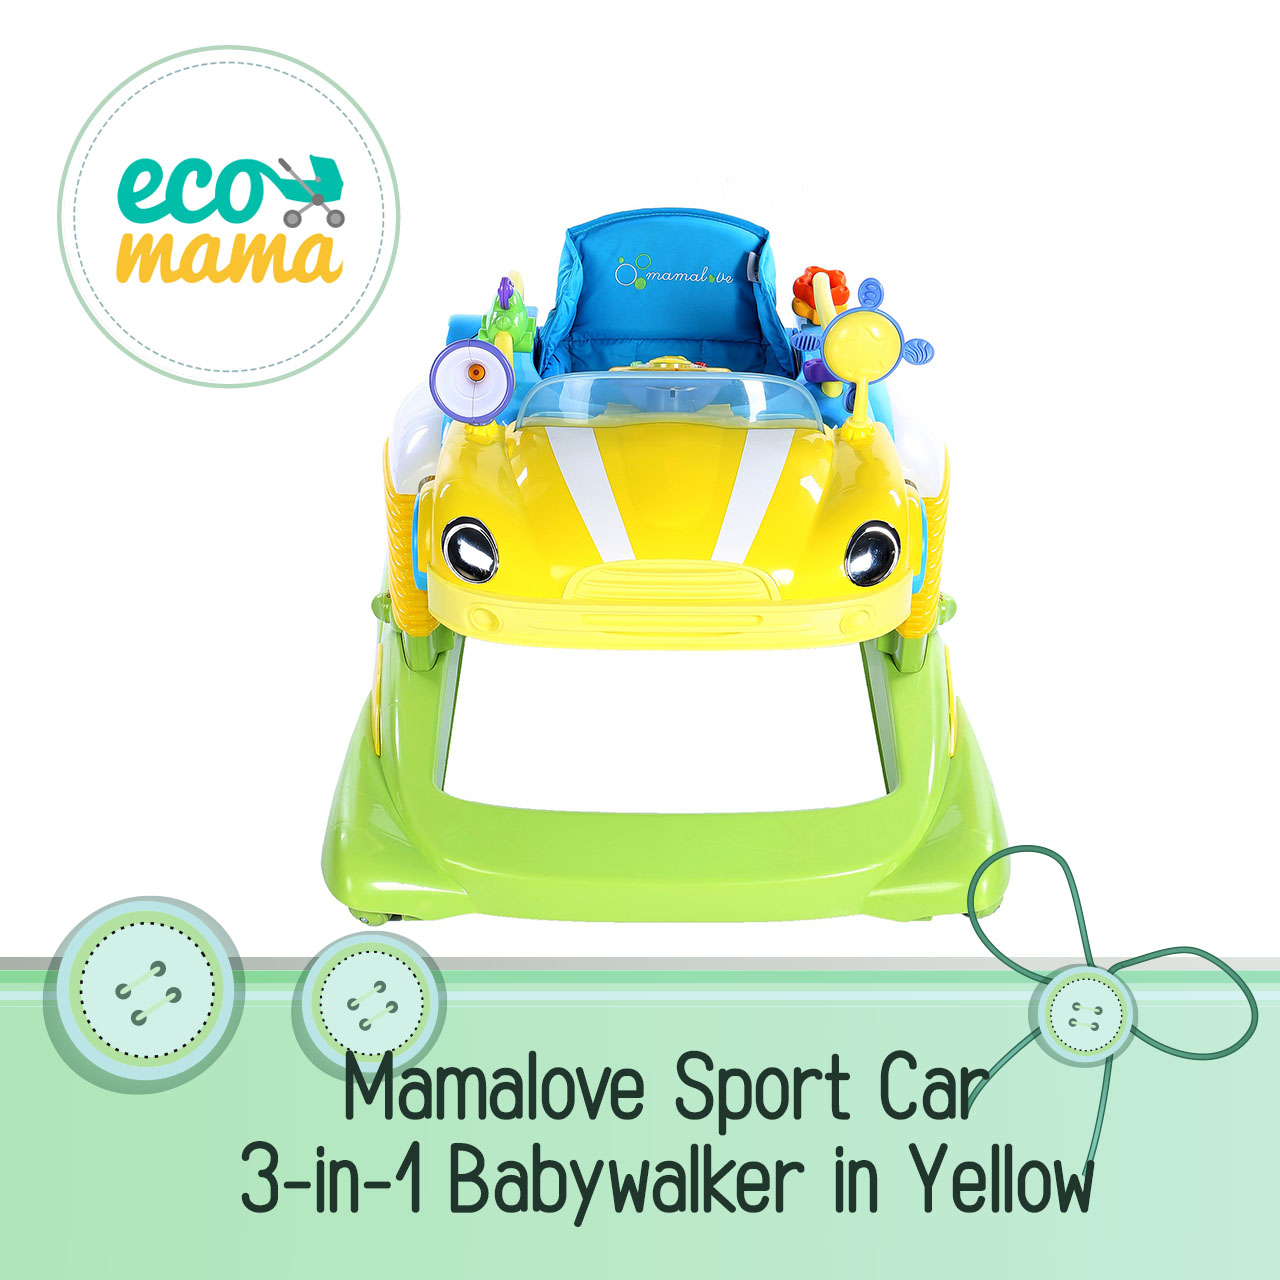 Mamalove Sport Car 3 in 1 Babywalker Yellow